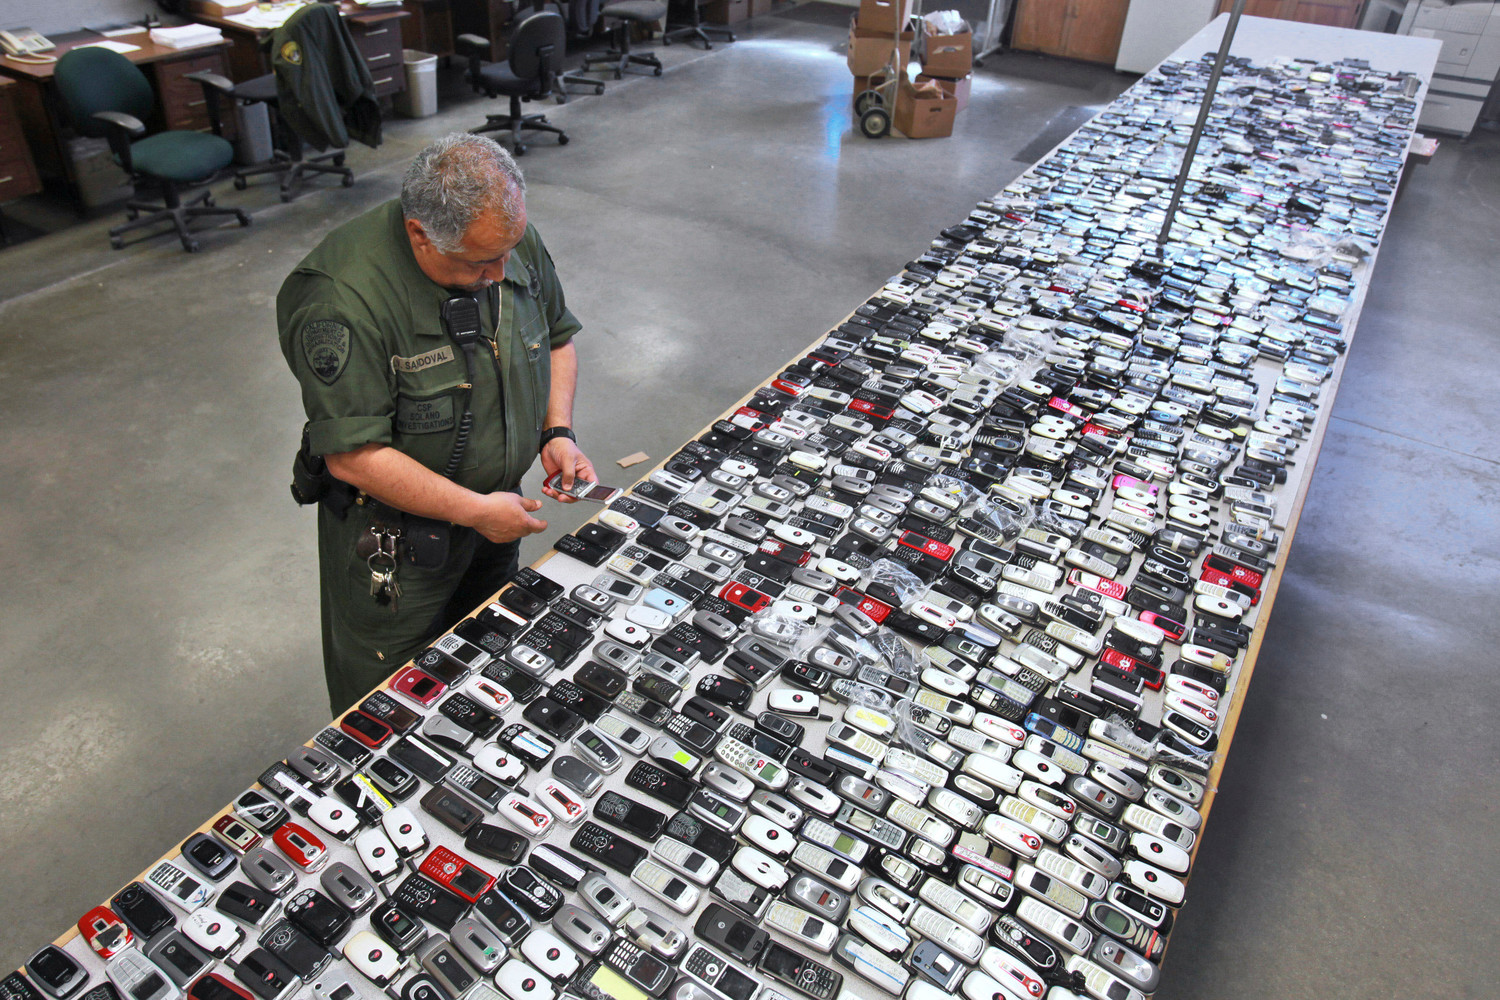 AP FILE PHOTOCorrectional Officer Jose Sandoval inspects one of the more than 2,000 cell phones confiscated from inmates at California State Prison, Solano in Vacaville, California.